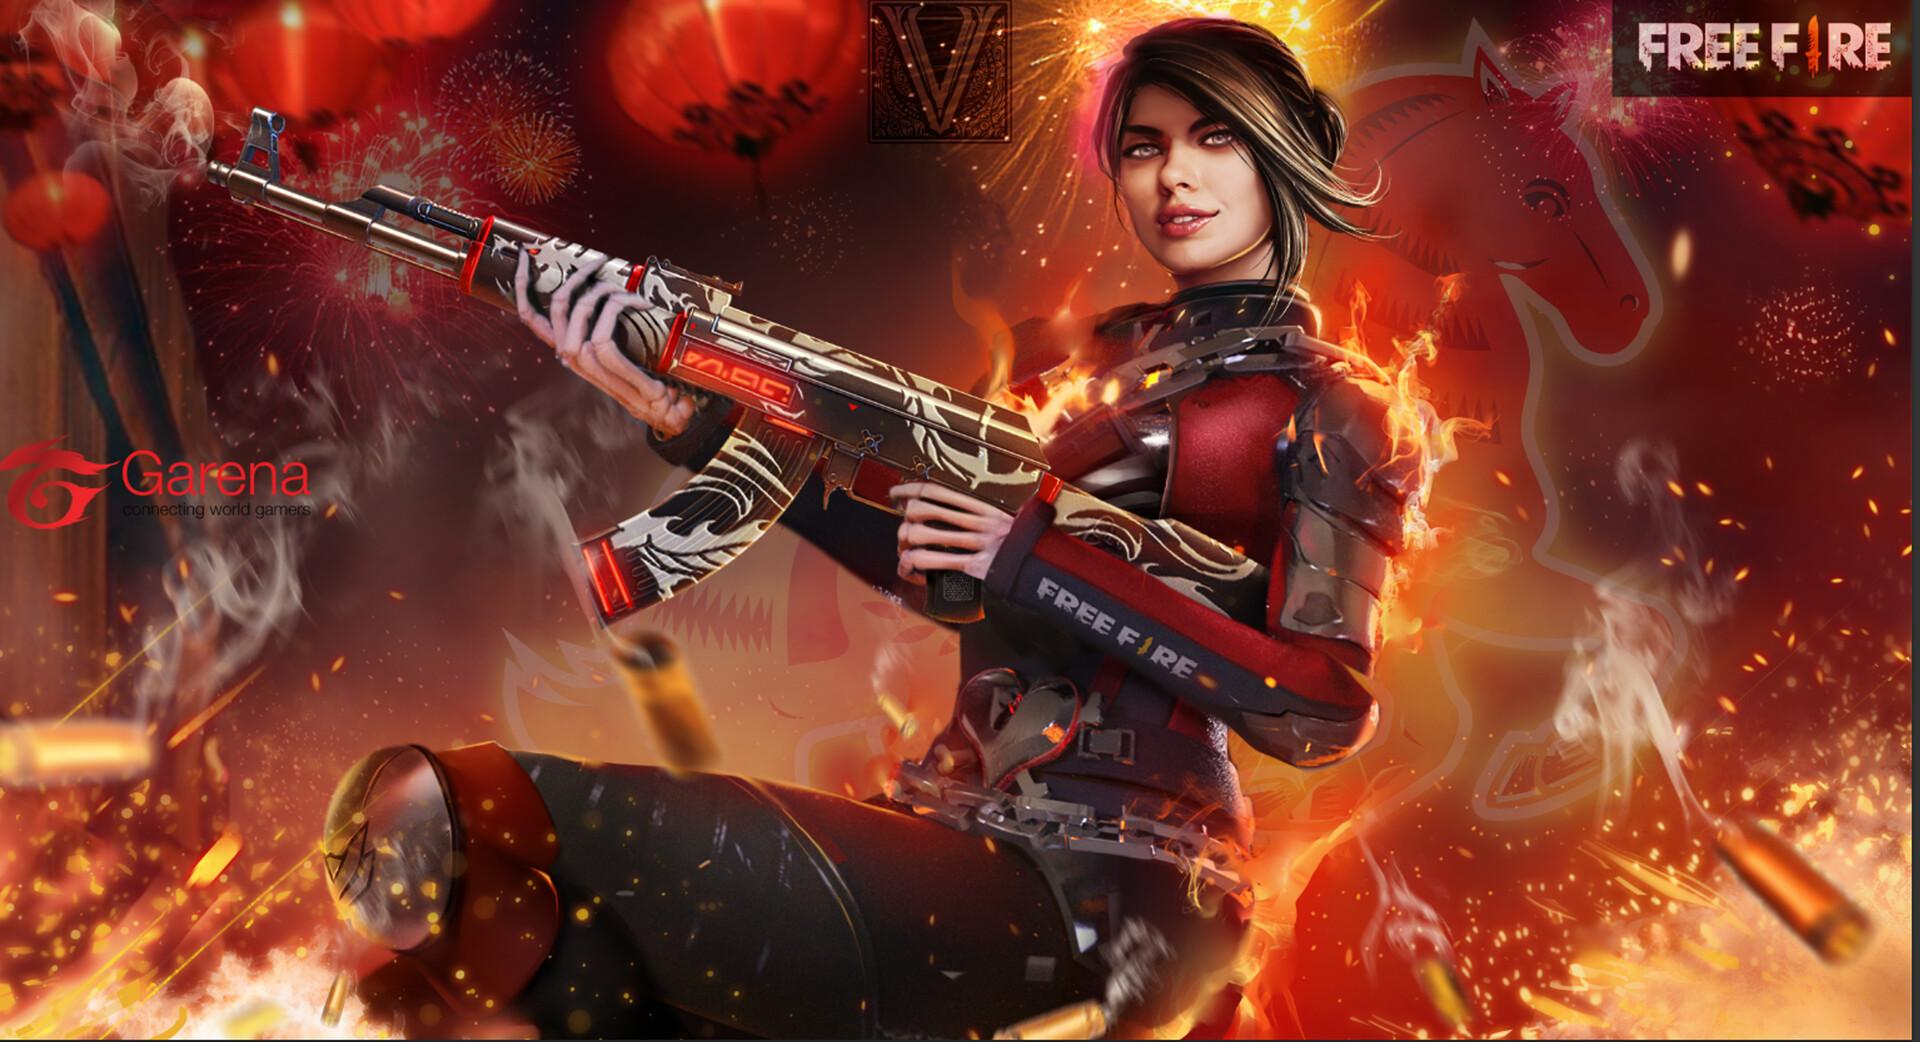 Paloma Garena Free Fire Wallpapers Wallpaper Cave